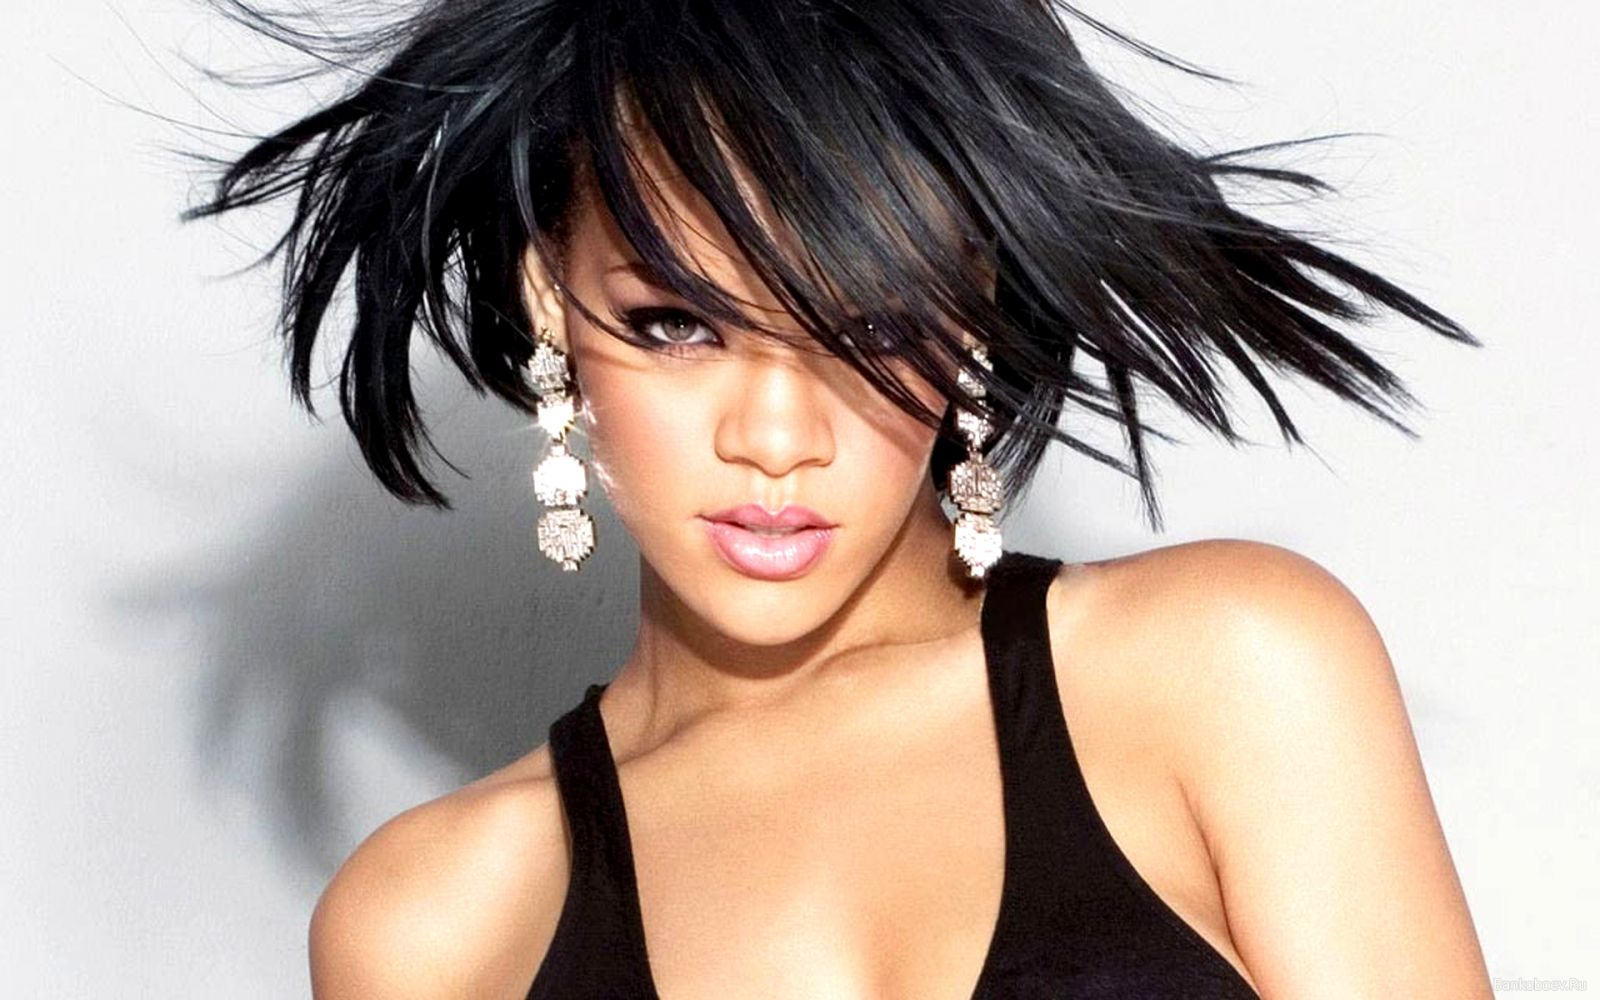 For view Rihanna, Rihanna Pictures, Rihanna Photos, Rihanna 2013 Free ...